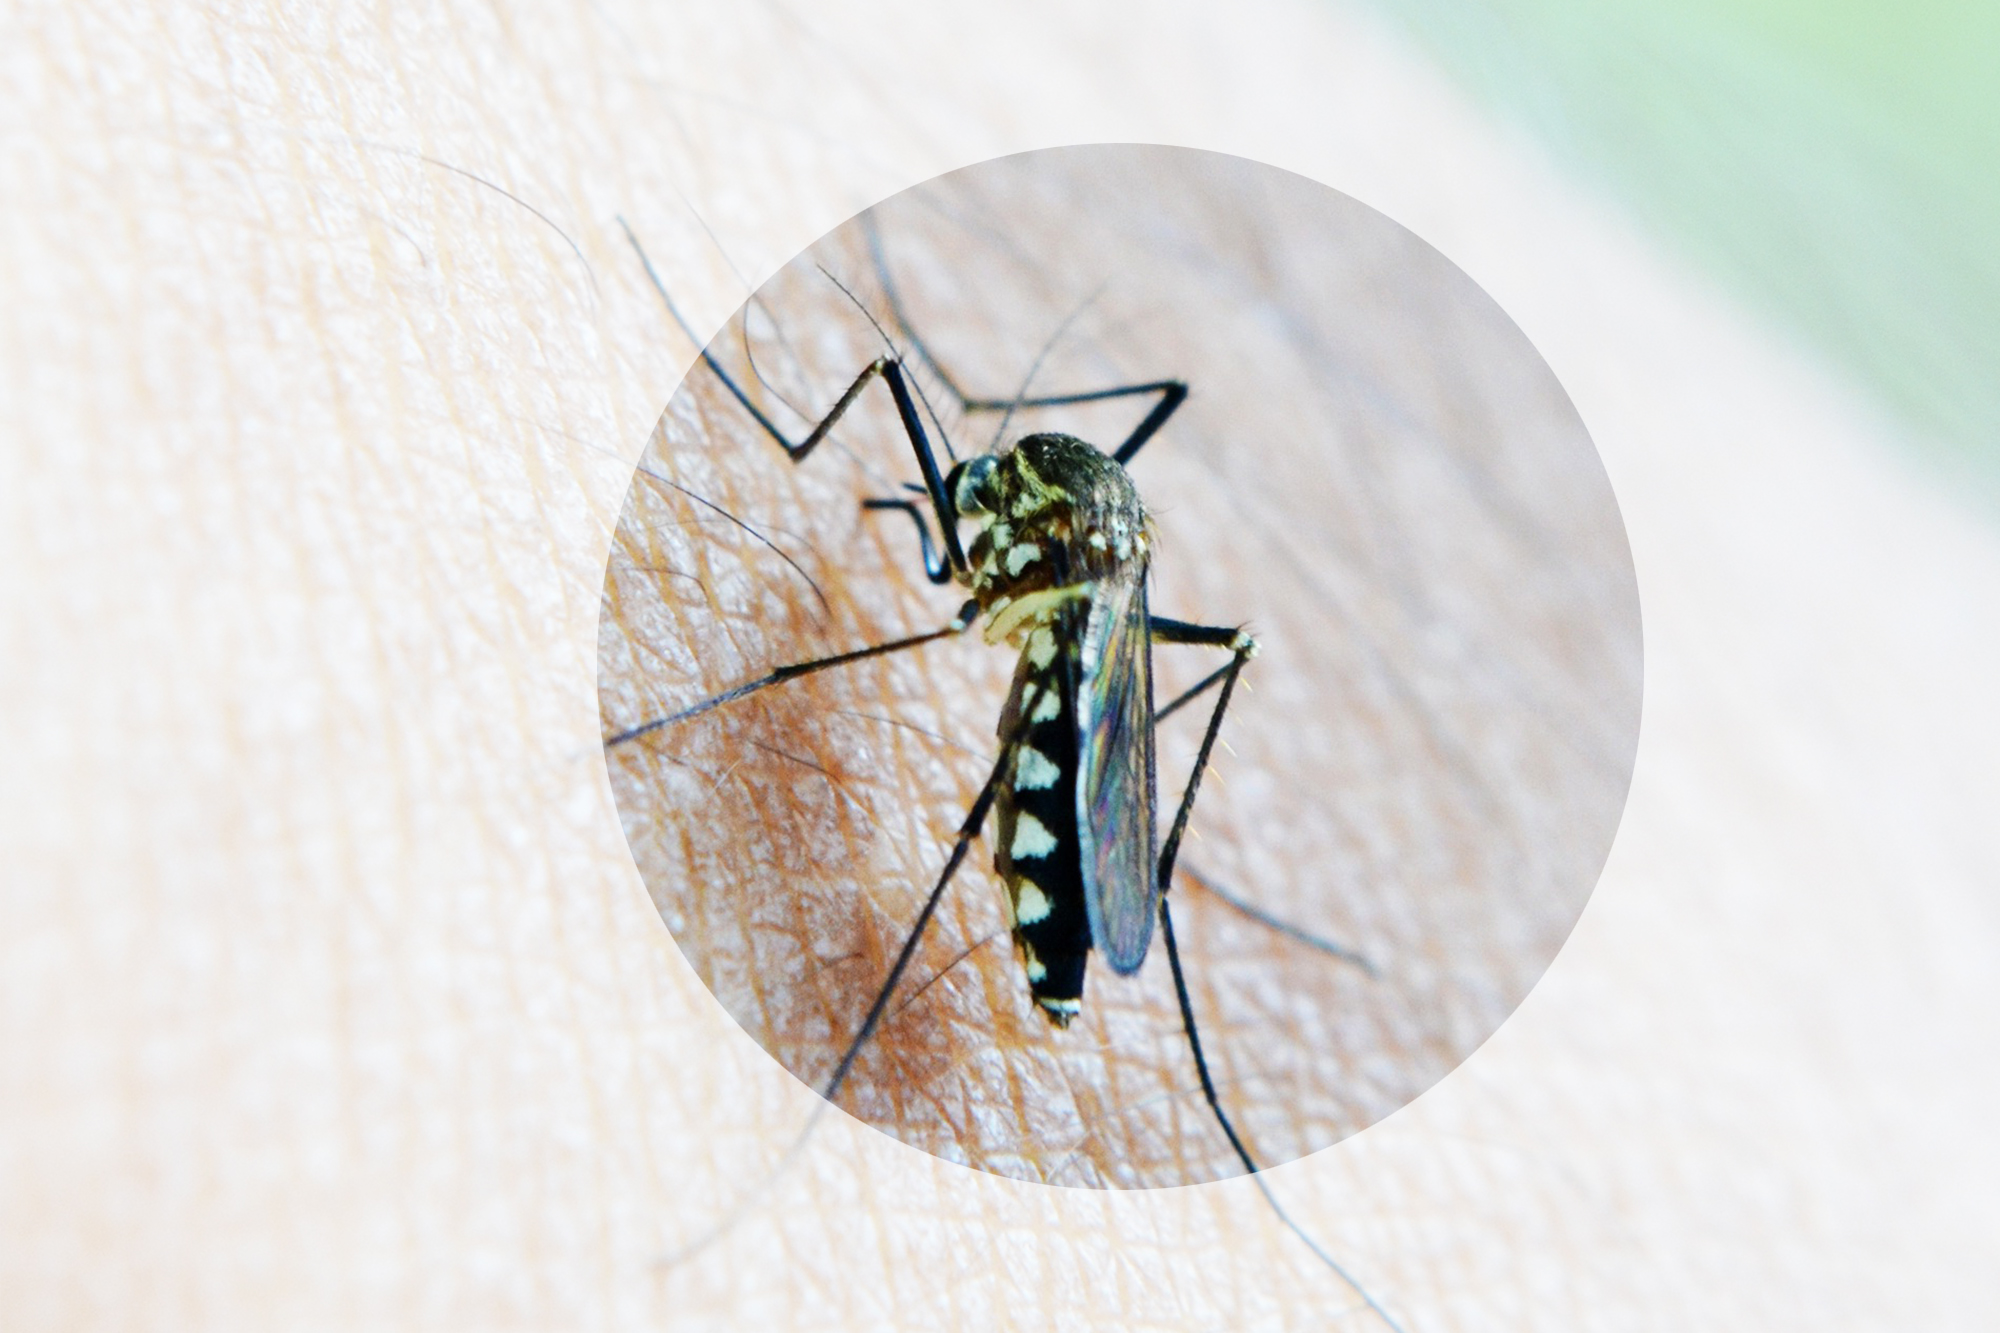 how to choose an insect repellent for travel